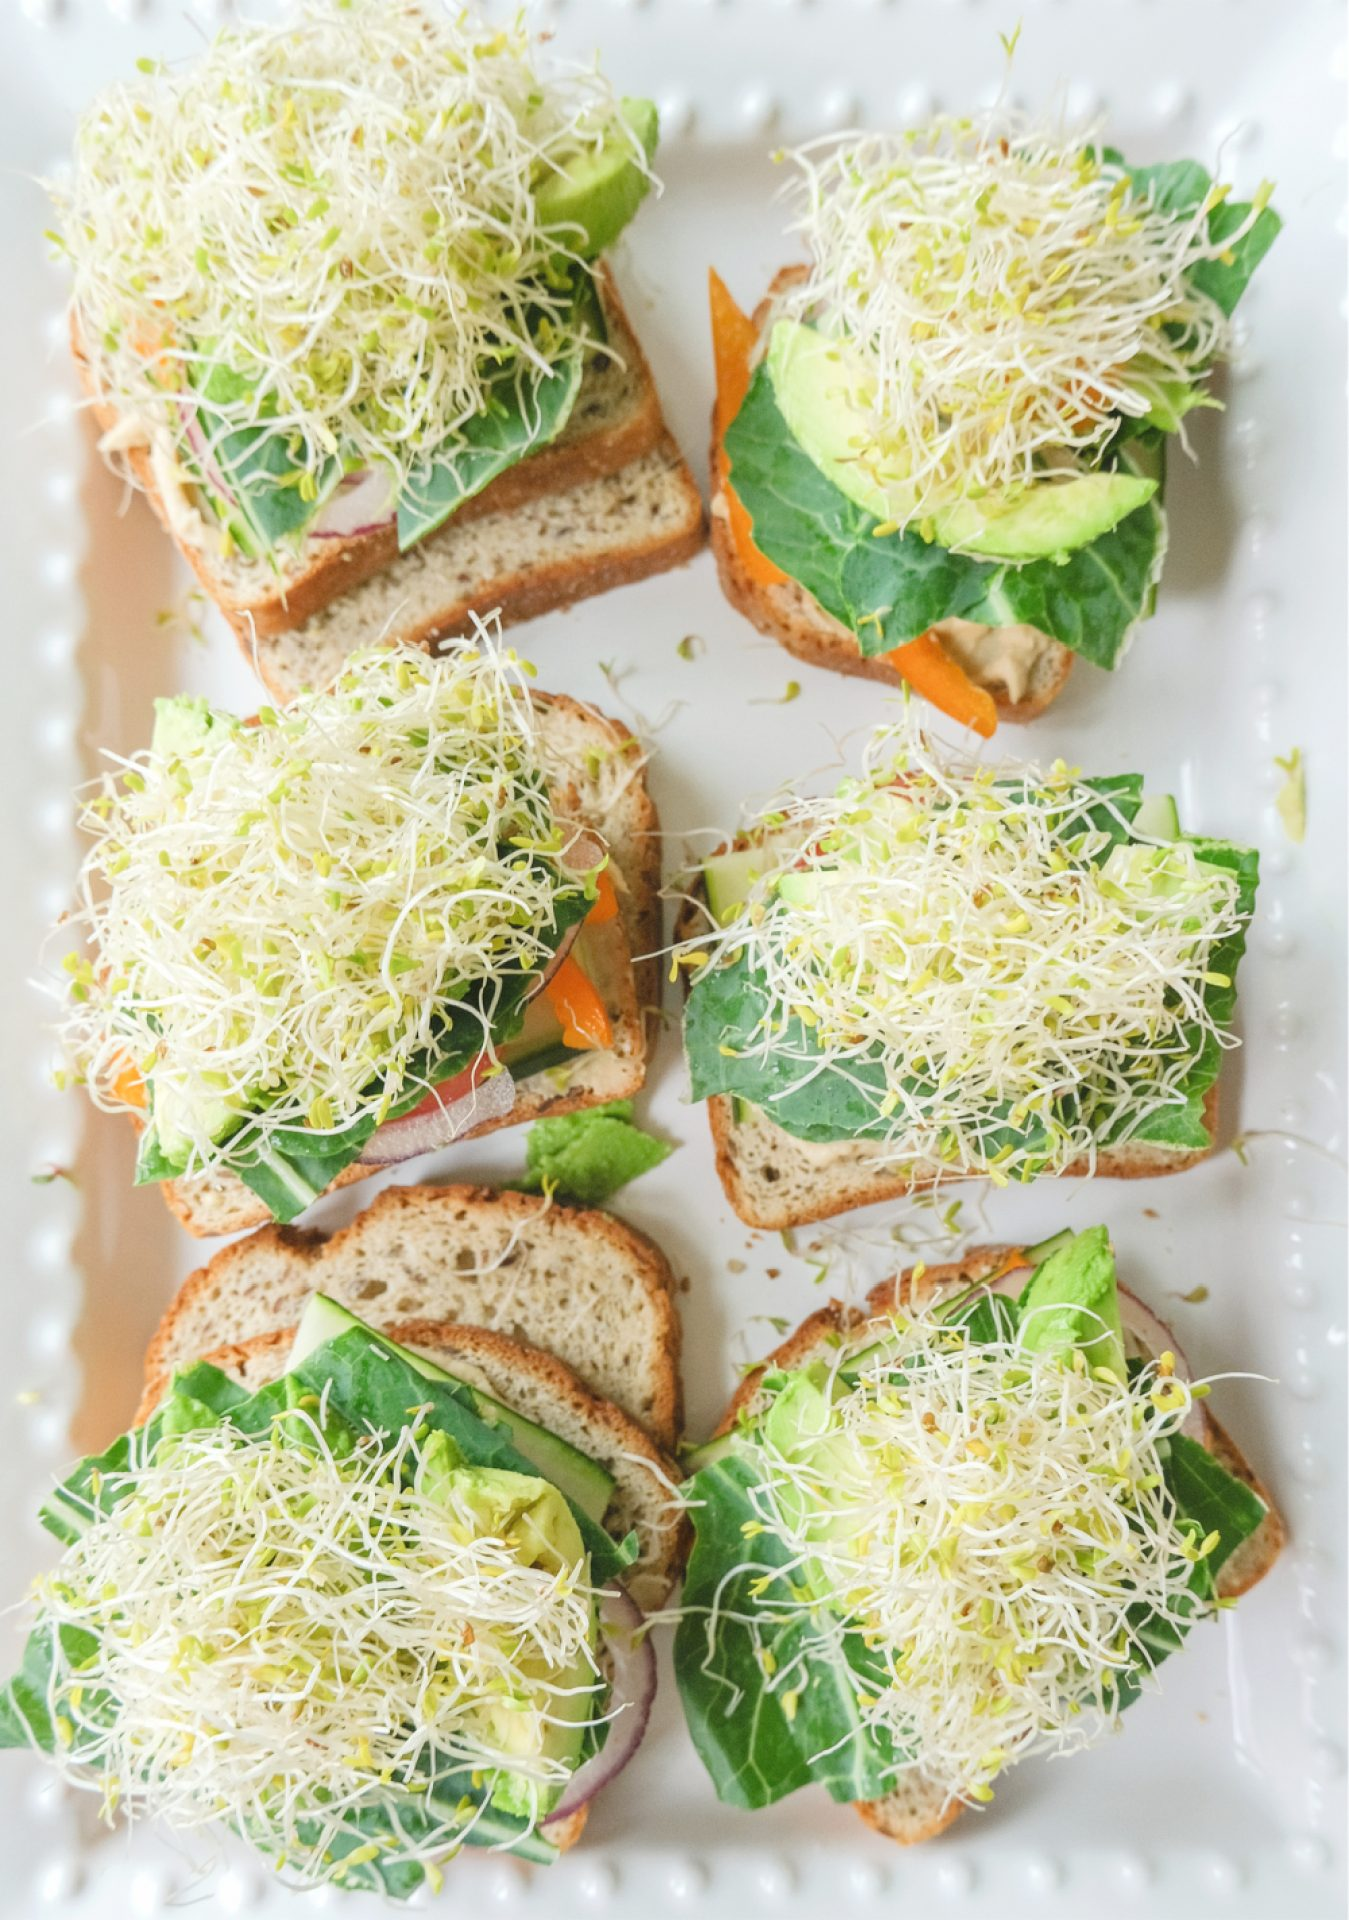 gluten free, plant based, sandwich, dairy free, lunch, vegetable sandwich, picnic, veggie sandwich, grapes, avocado, collard greens, hummus, veganaise, tomatoes, lunch idea, vegan, avocado, sprouts, cucumber, food, healthy eating, eat clean, veggie